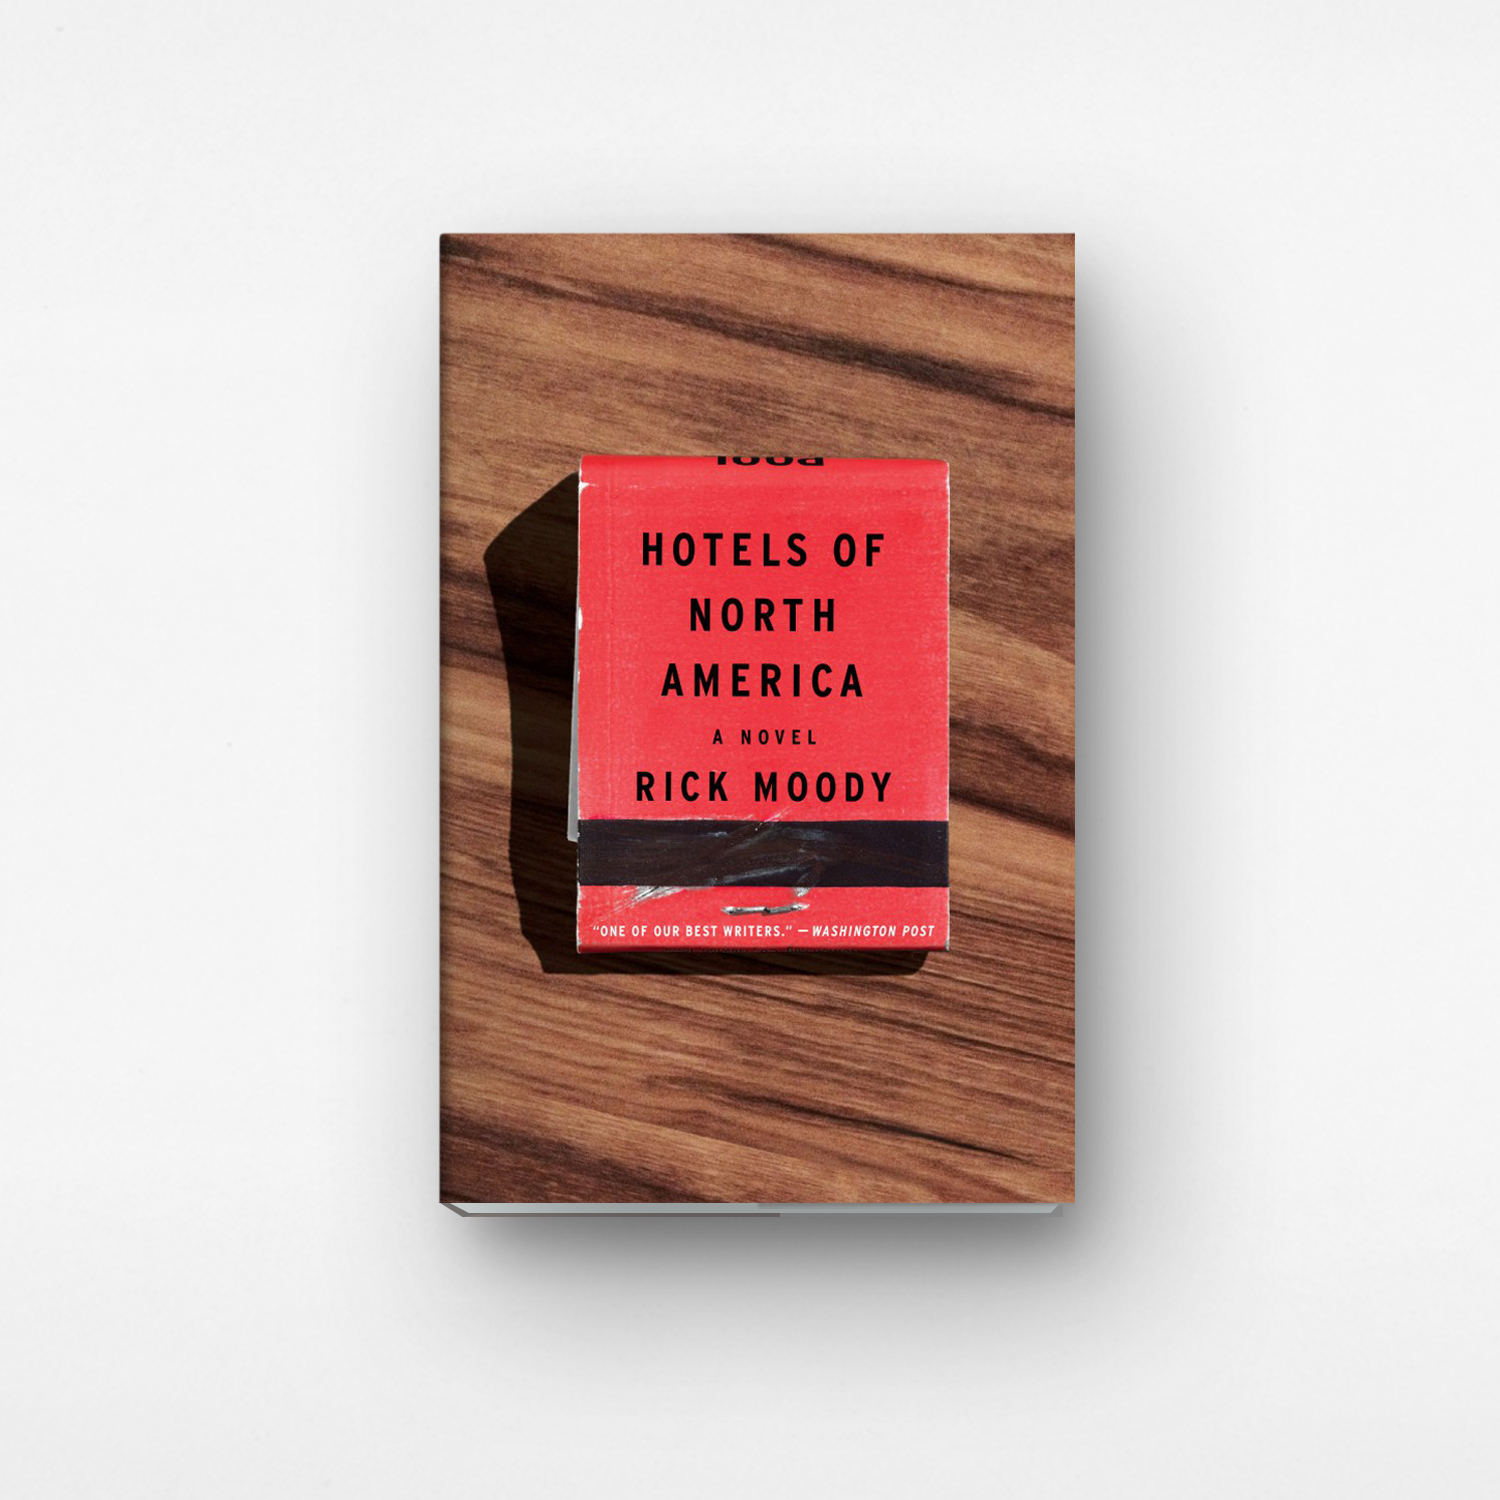 Hotels of North America designed by Keith Hayes